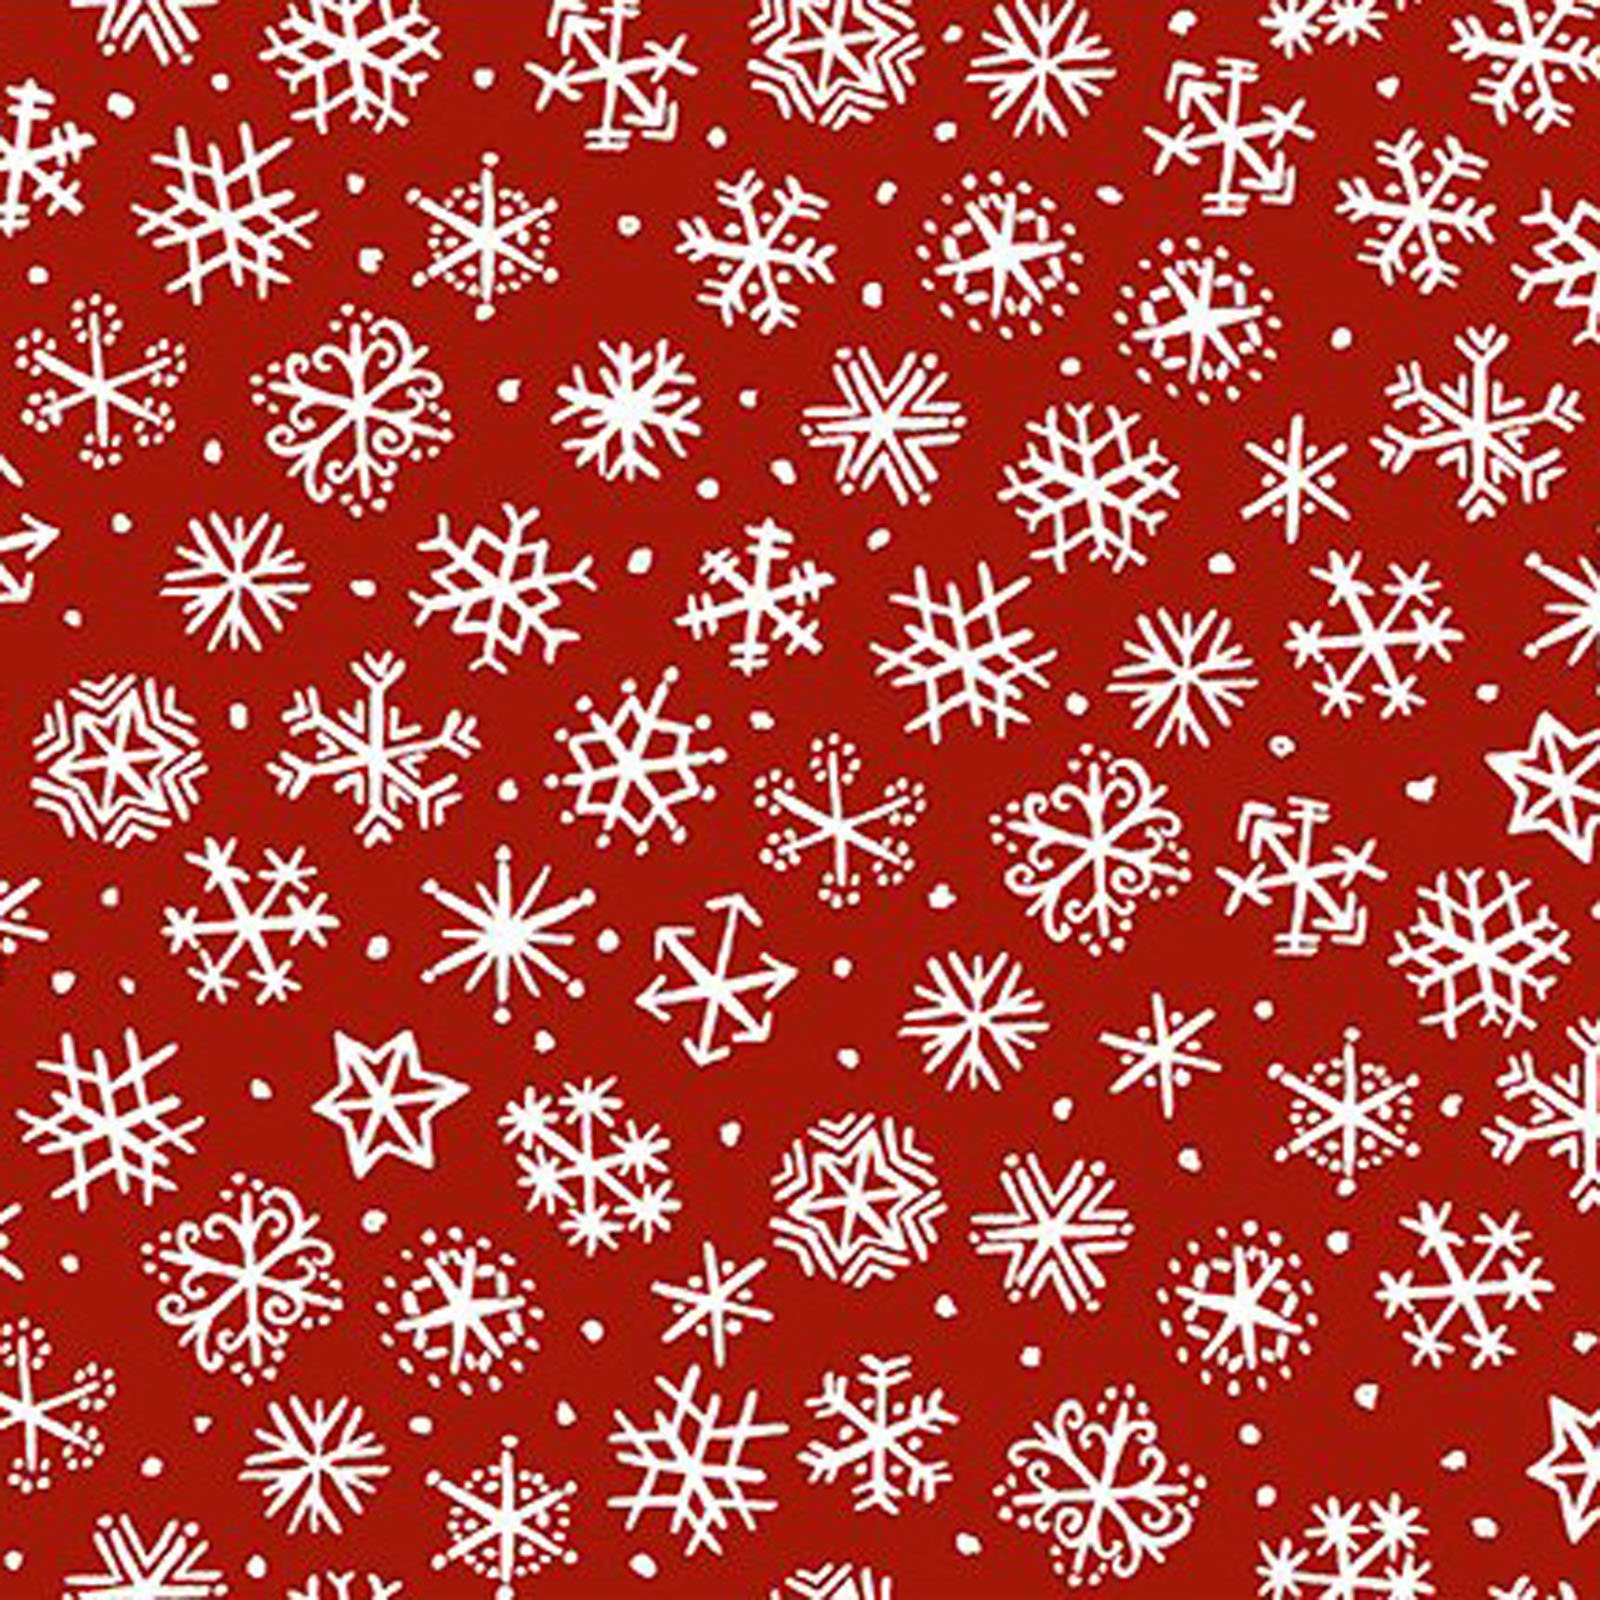 INTH-11JPL 2 - SNOWY BY JULIE PASCHKIS SMALL SNOWFLAKES RED -ARRIVING IN JUNE 2021